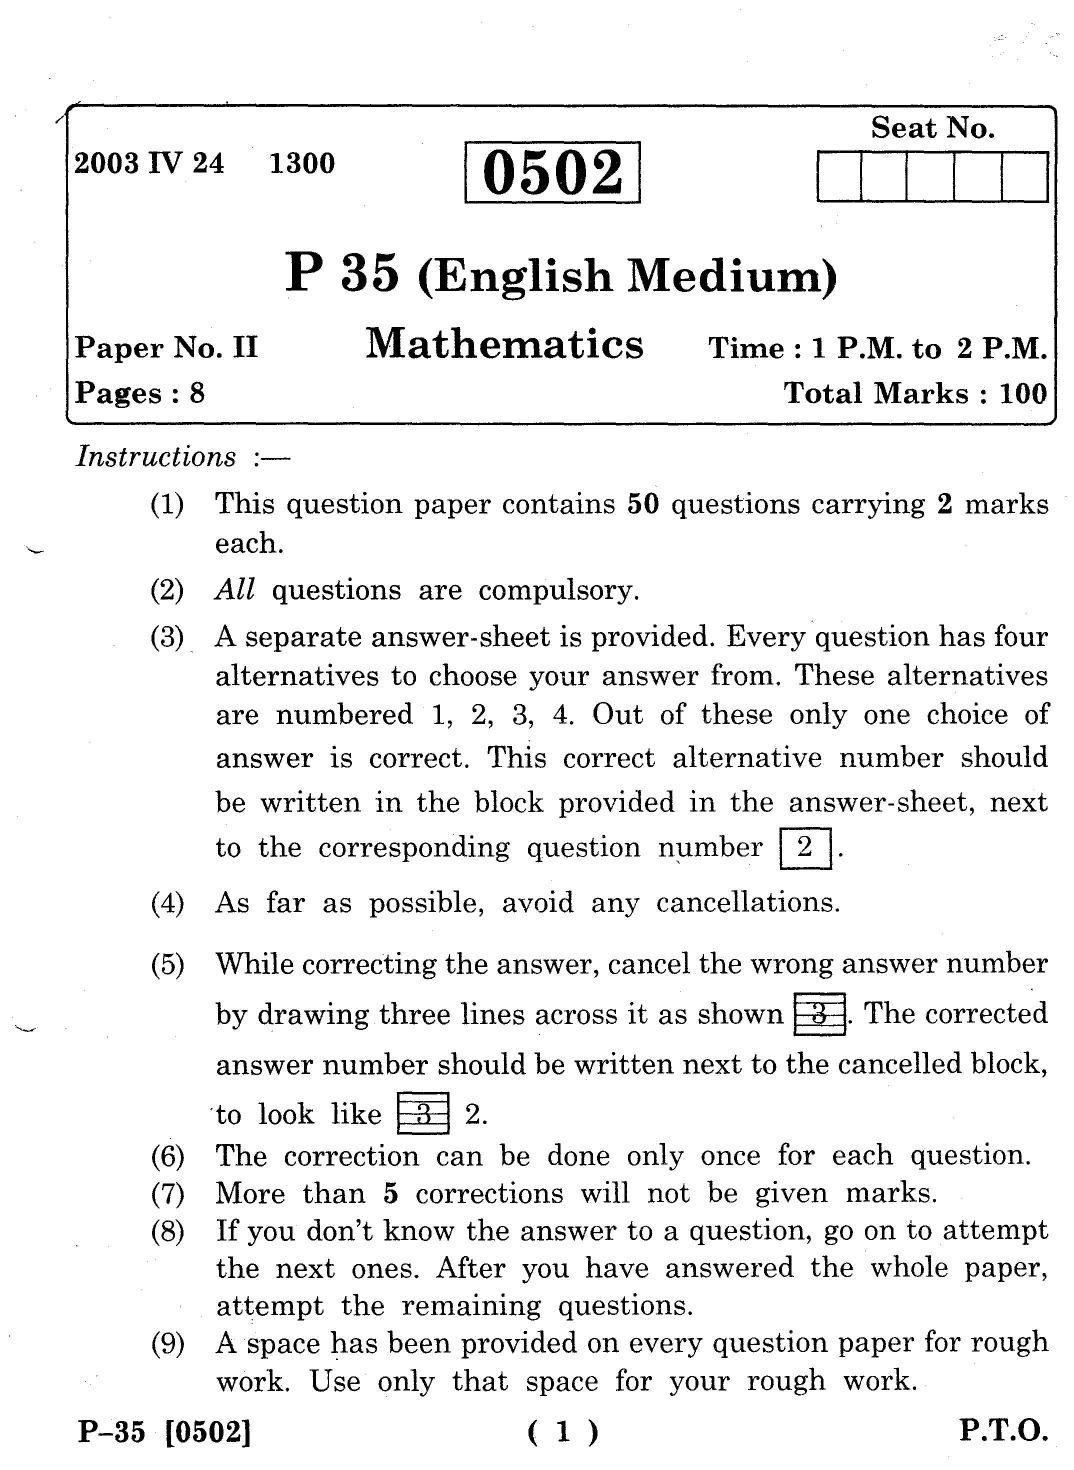 Model question papers for 4th standard scholarship exam